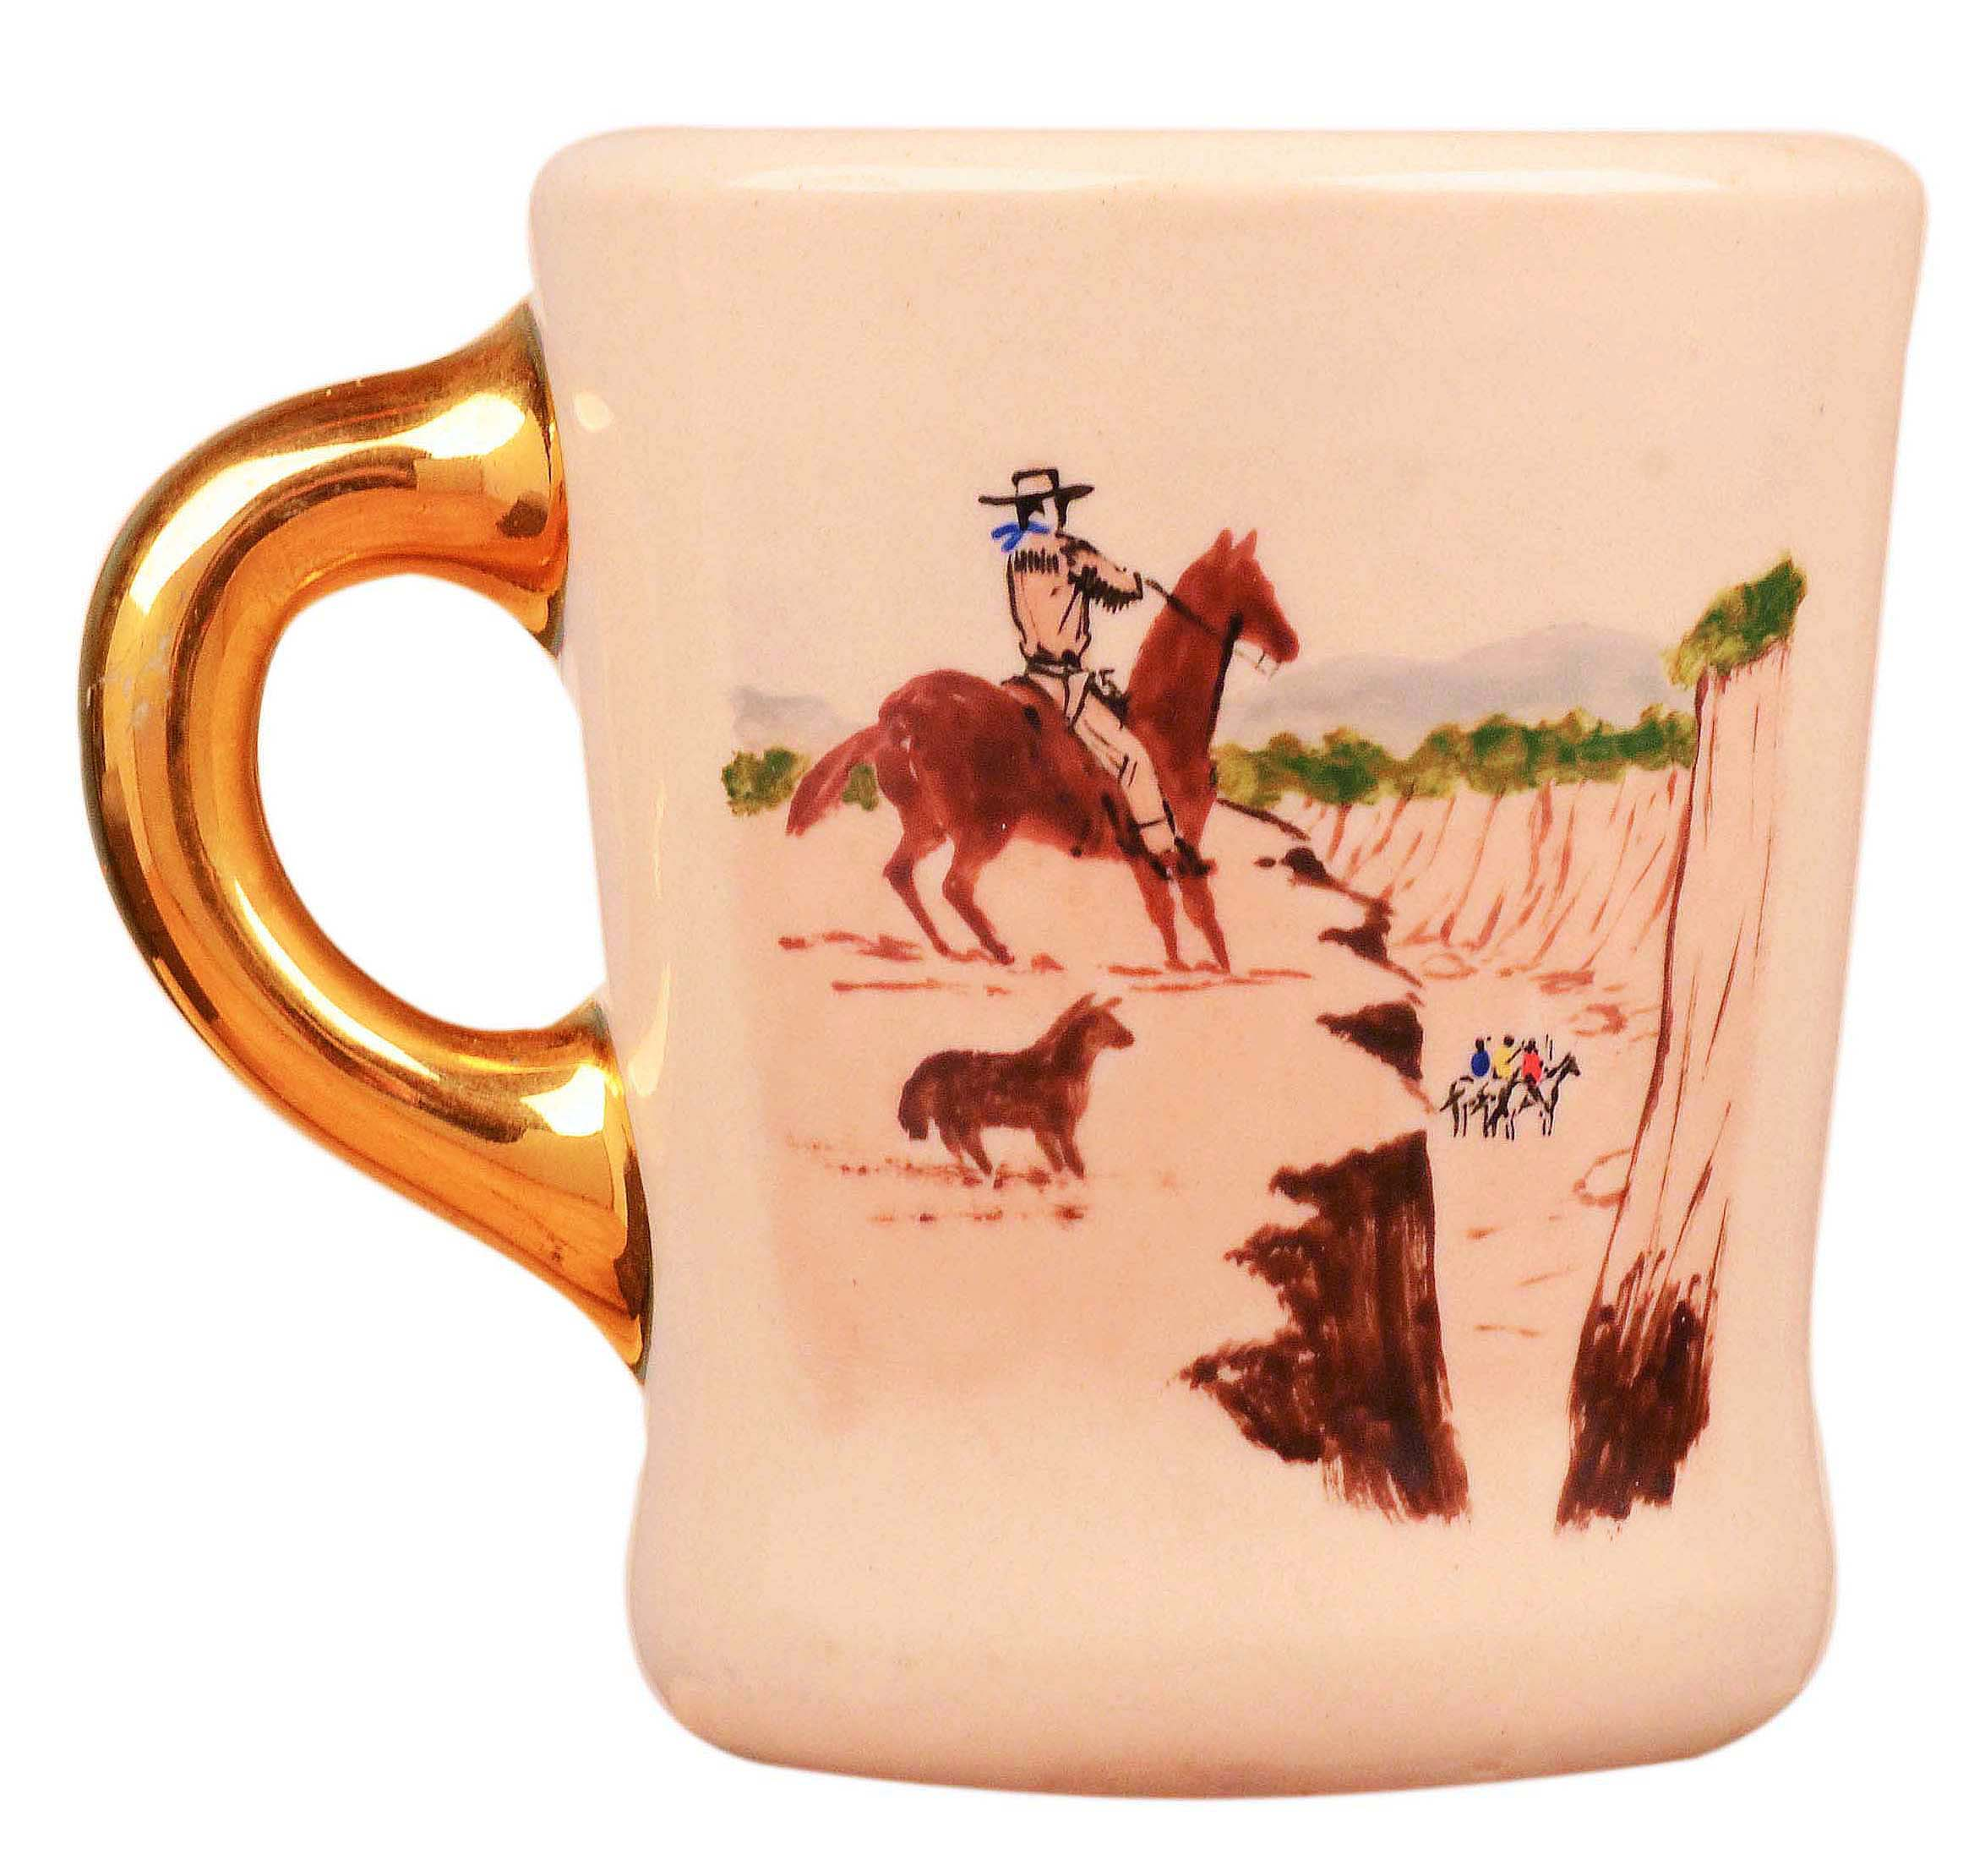 John Wayne mug for the 1953 movie Hondo, front.